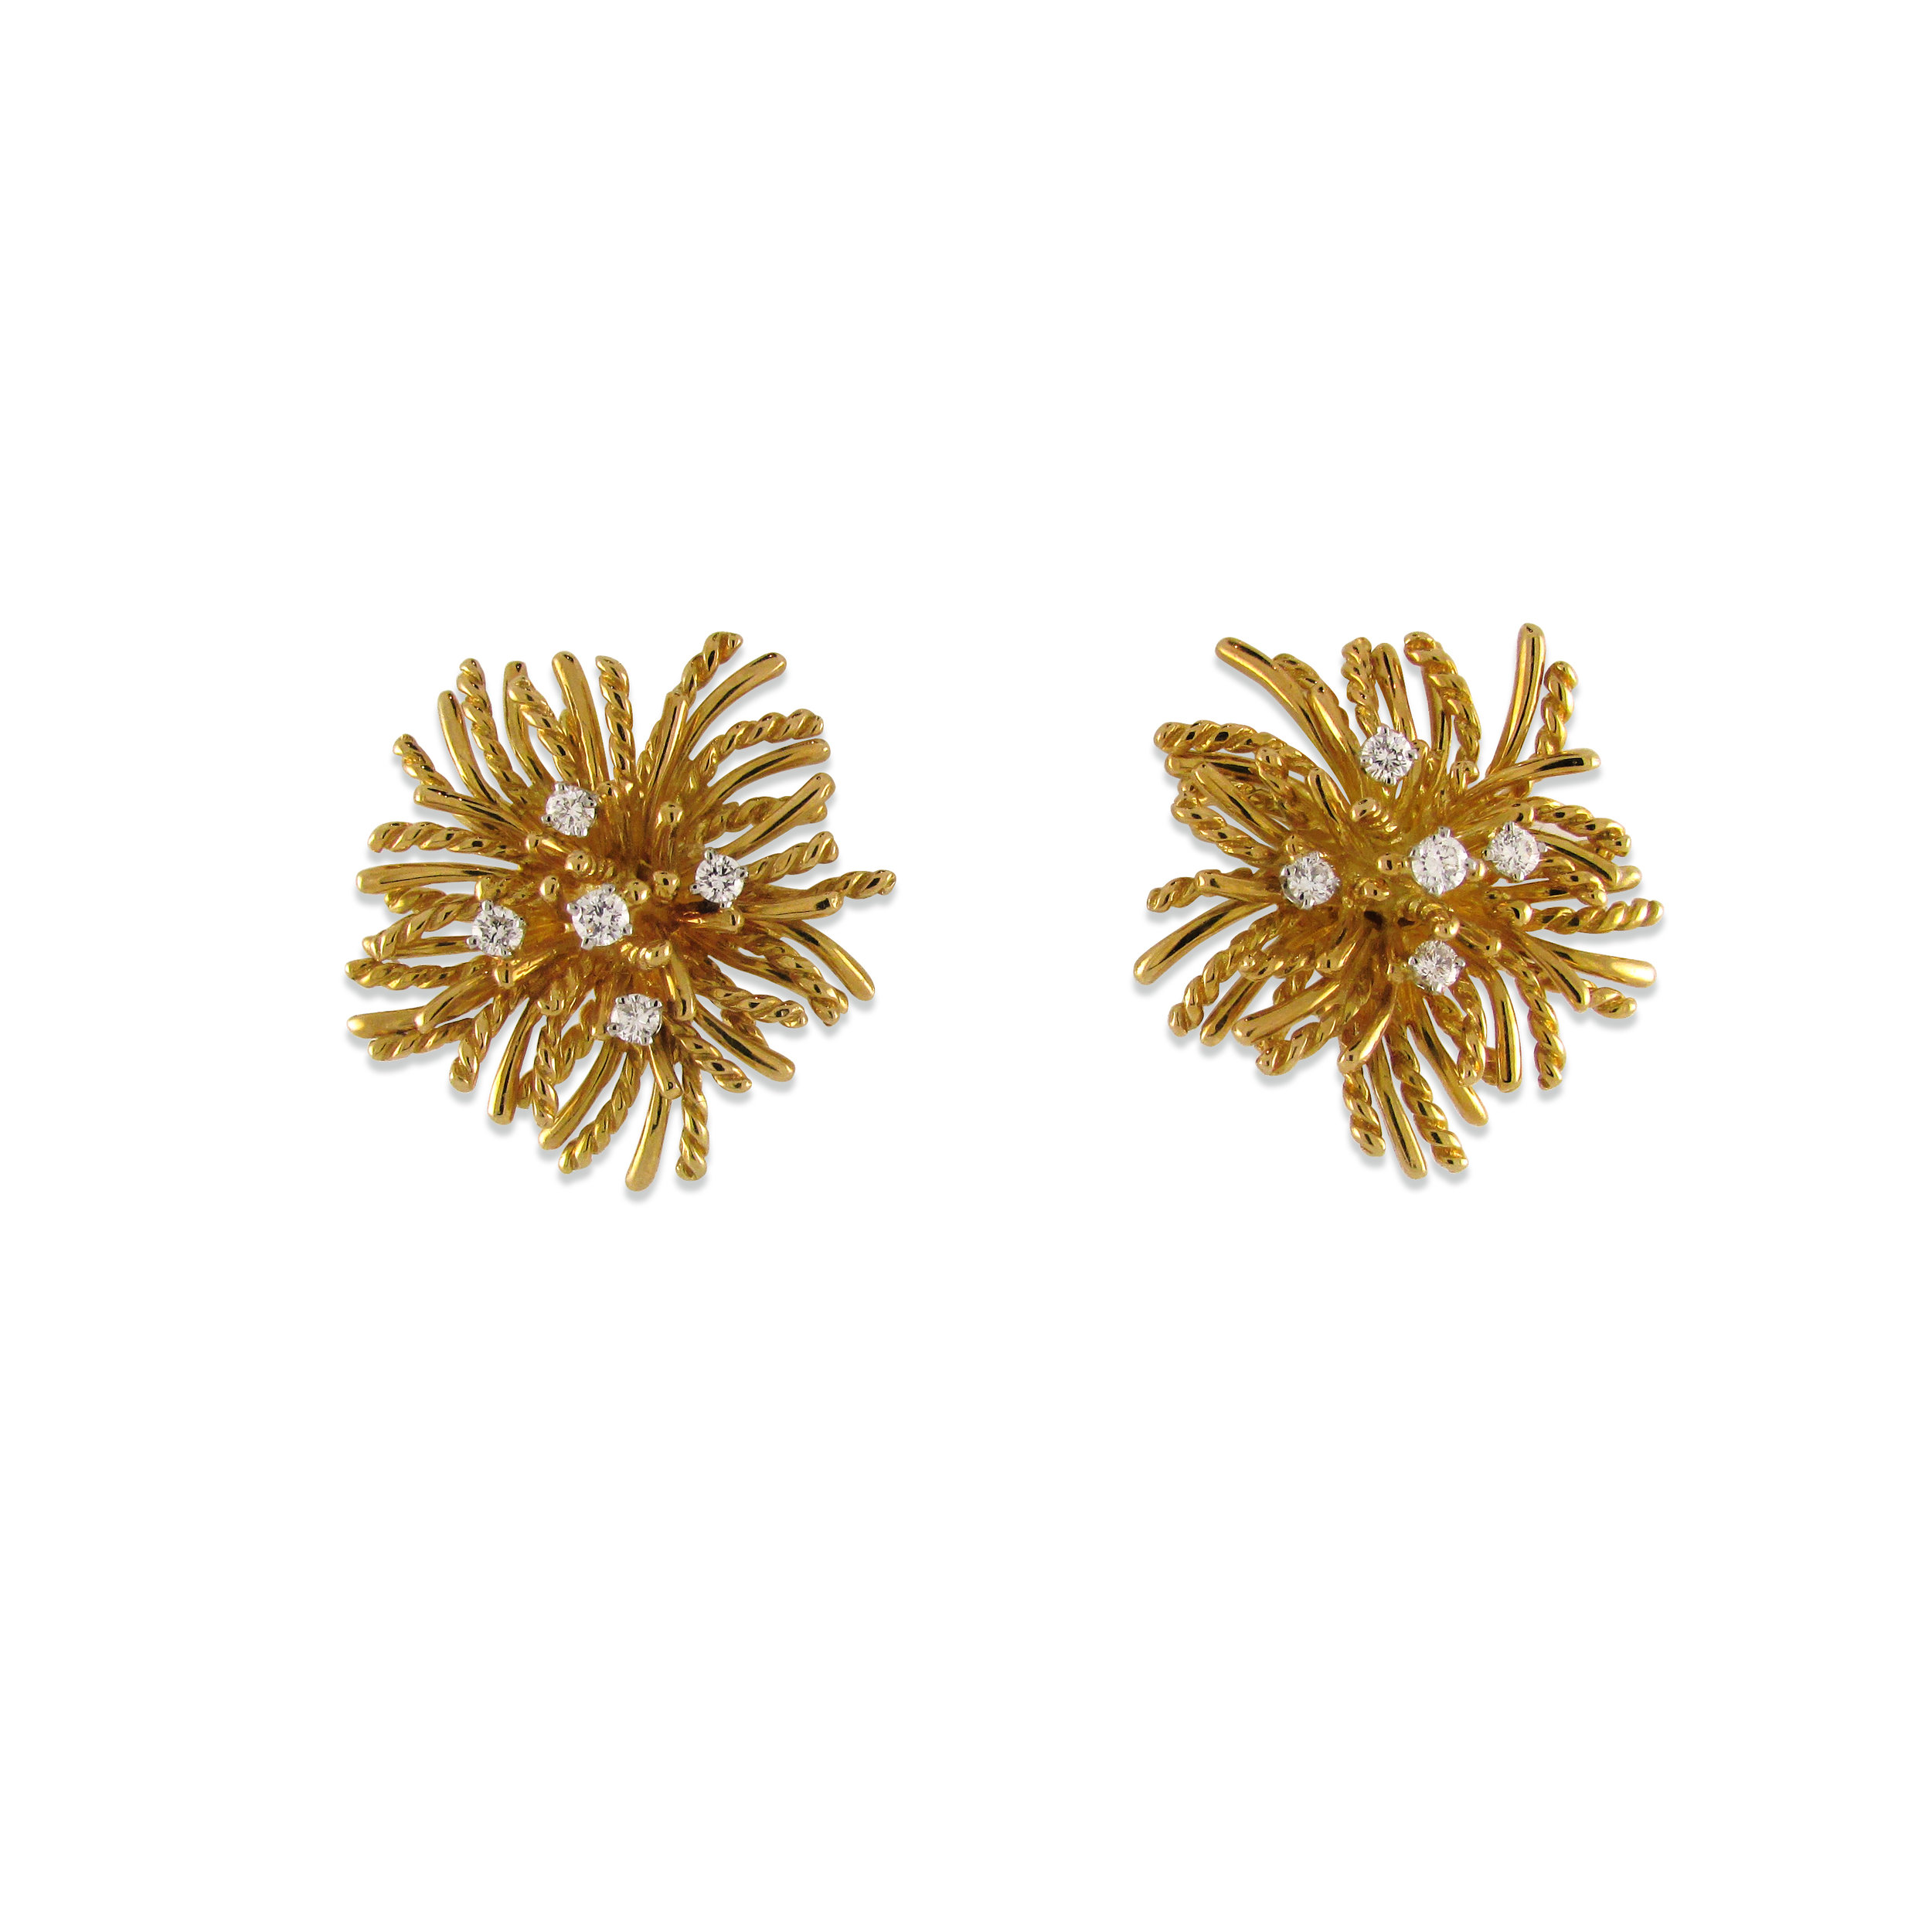 Anenome Earrings by Tiffany and Co